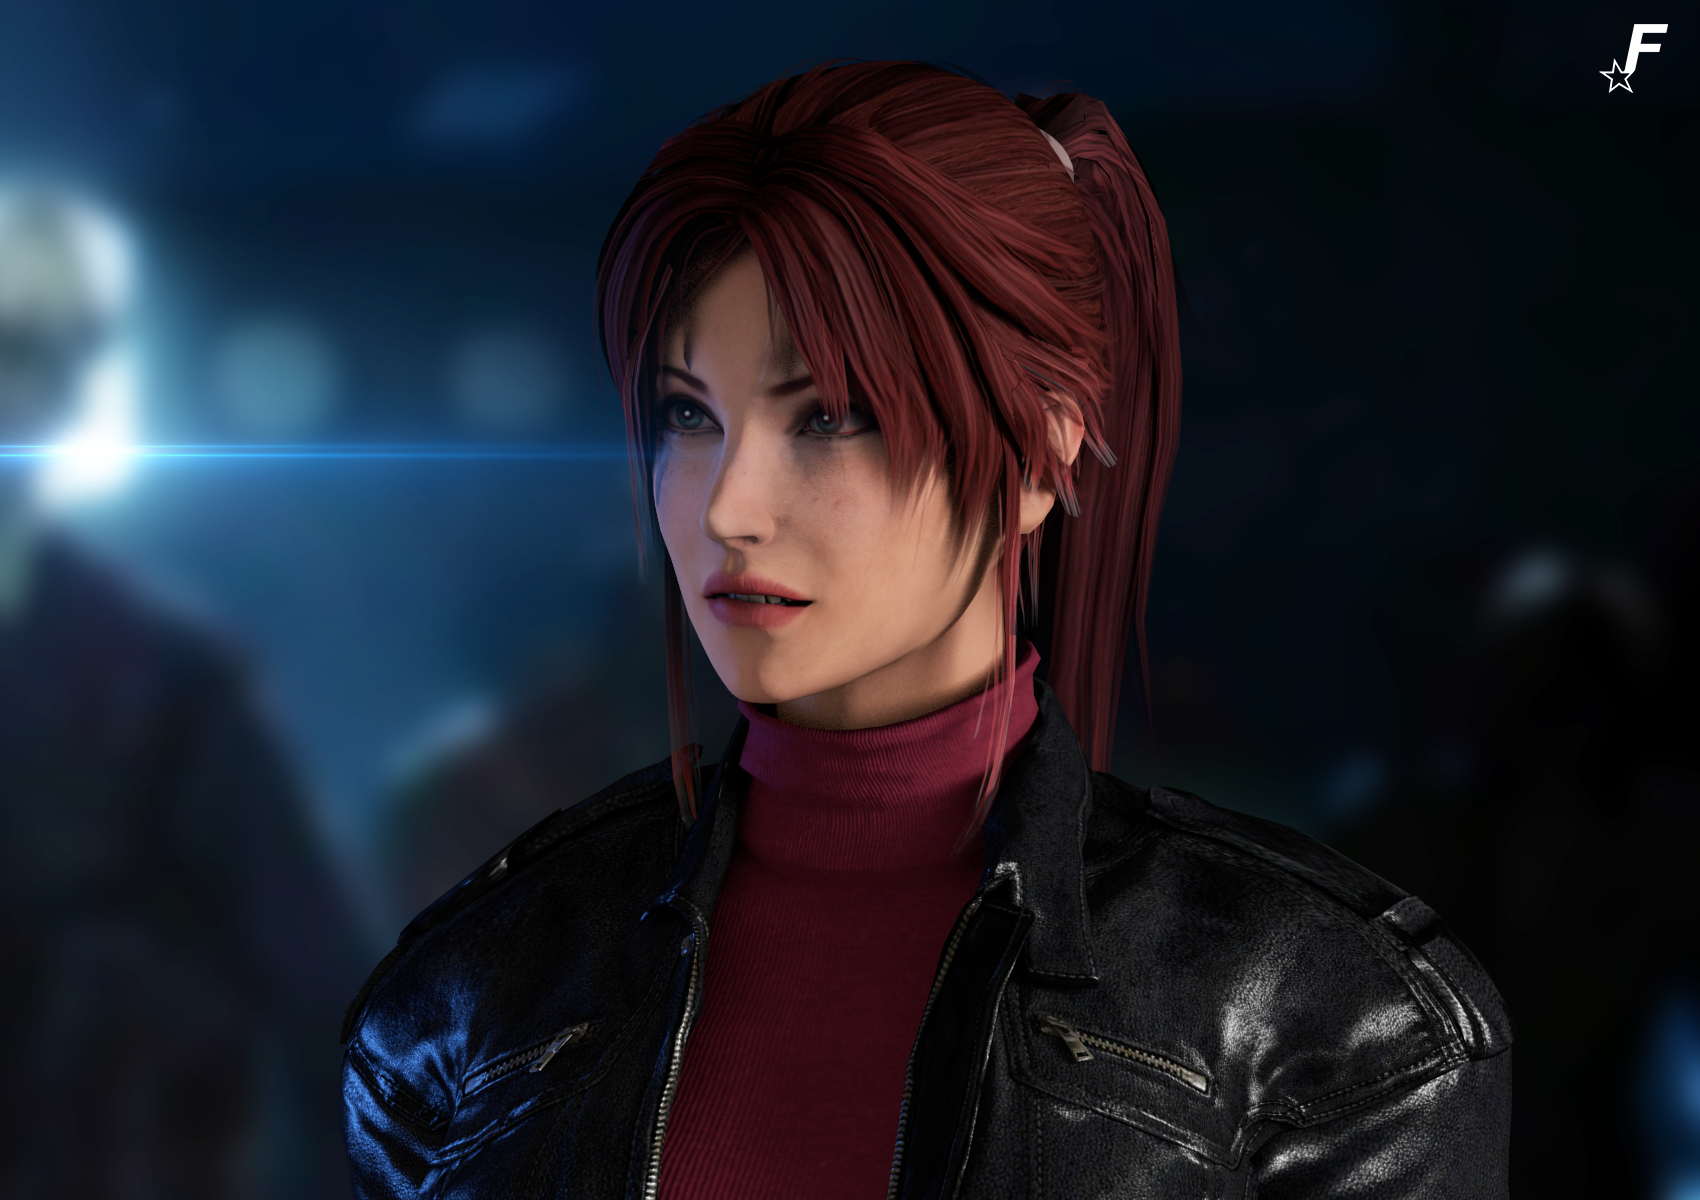 Resident evil claire redfield has a great ass